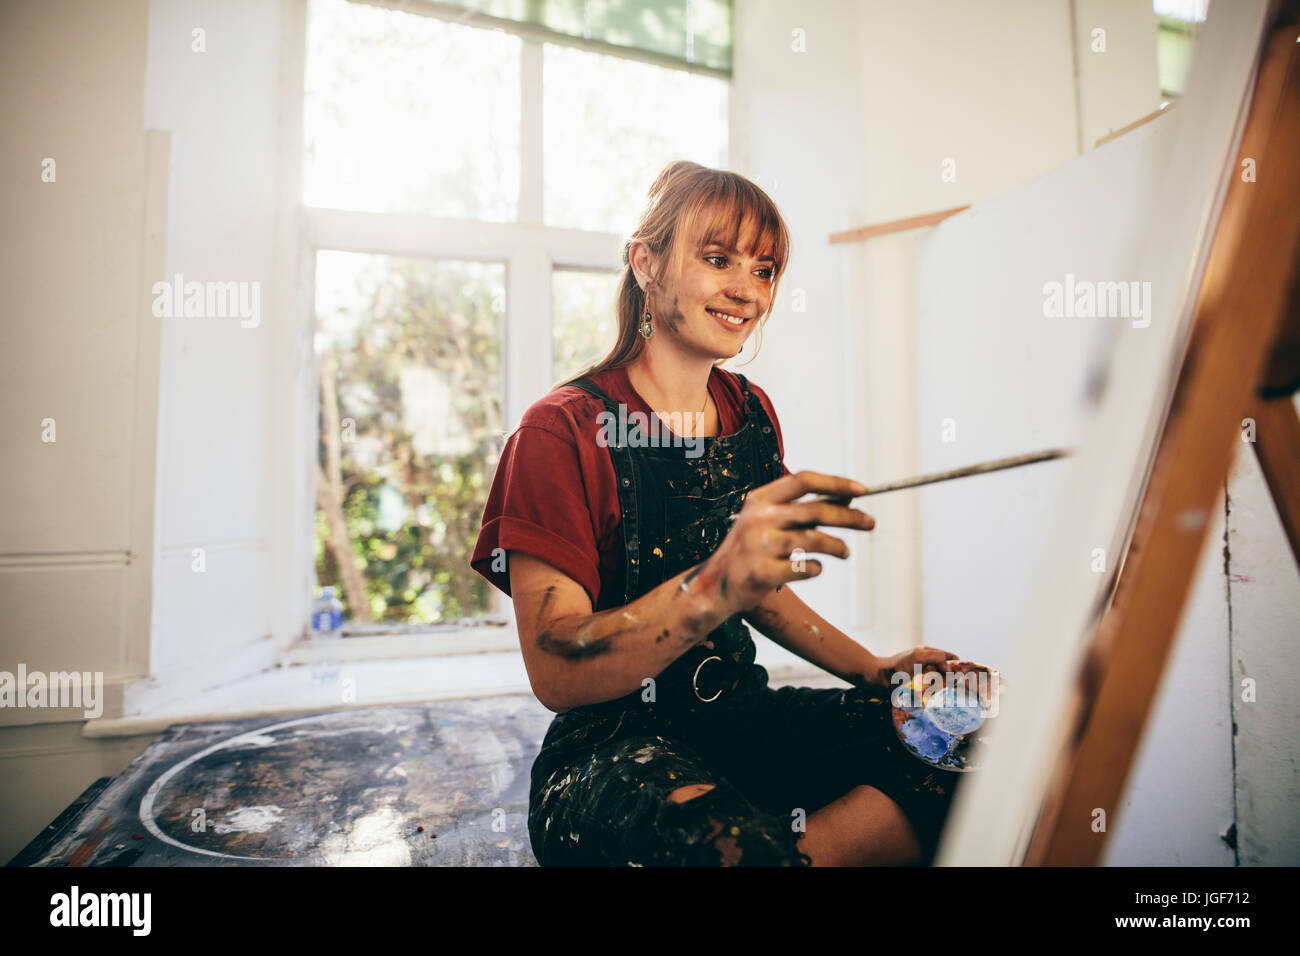 Indoor shot of female artist painting in studio. Woman painter painting in her workshop. - Stock Image